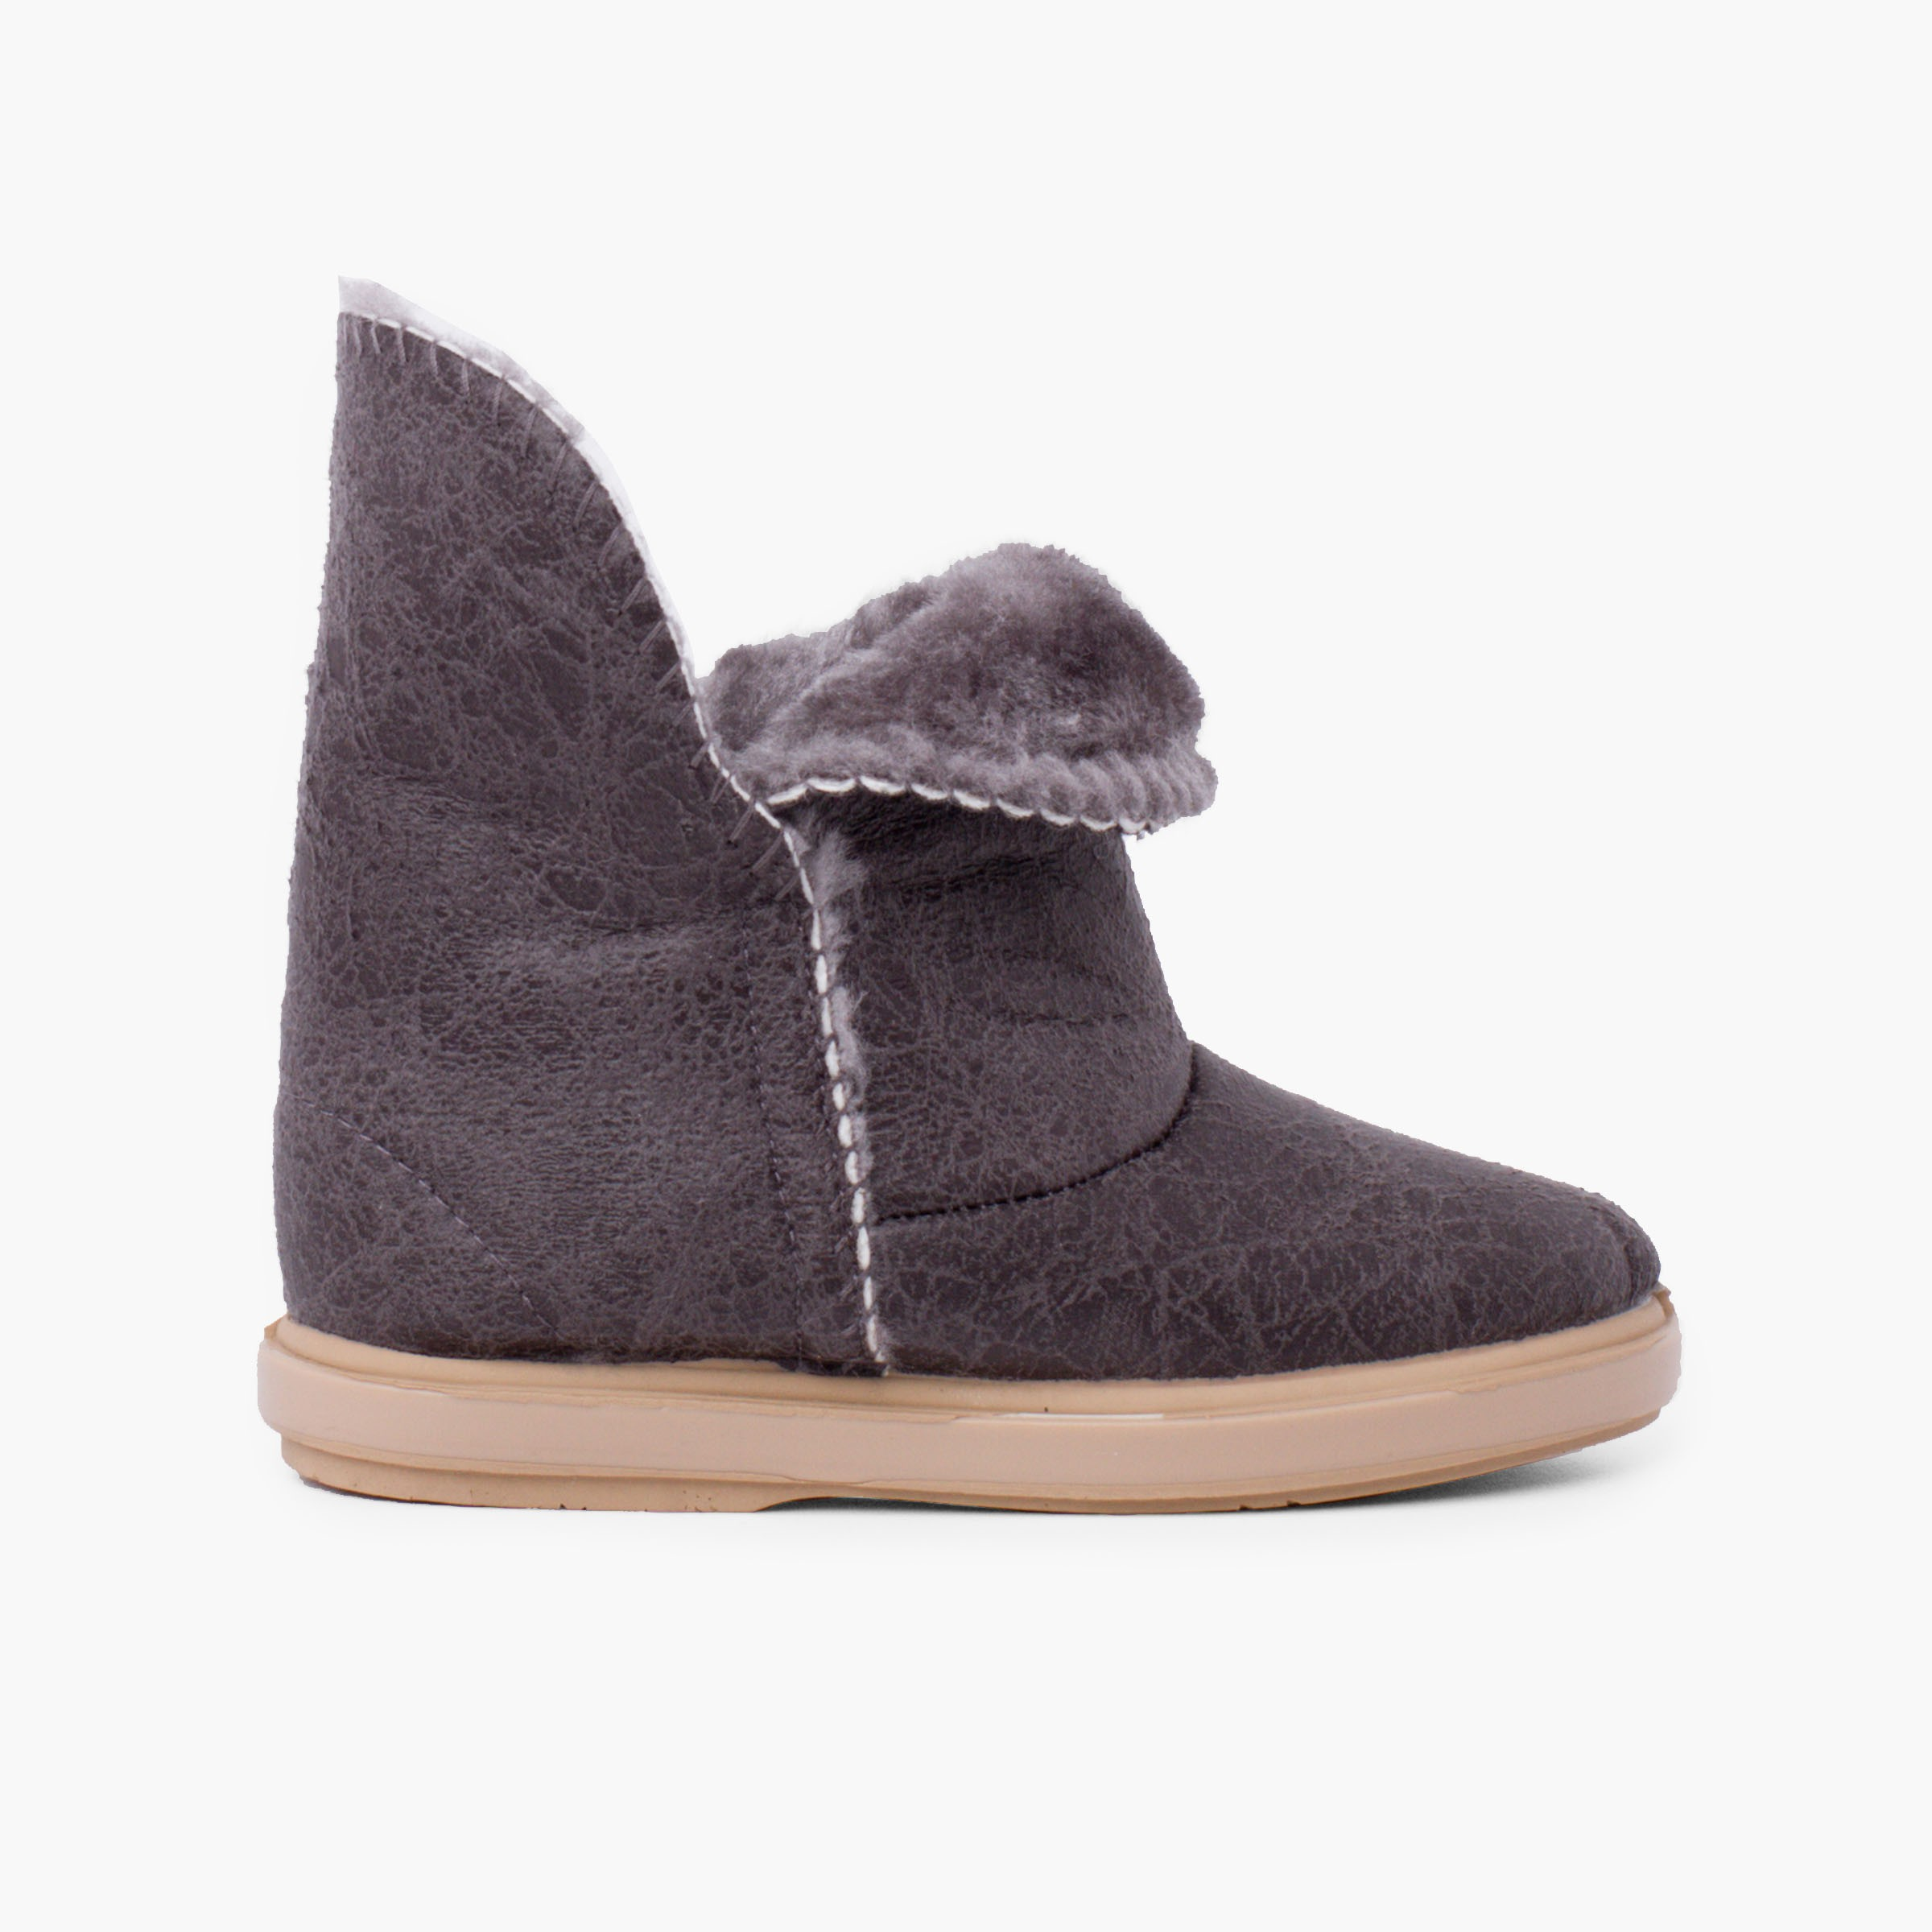 Australian style girl boots with side opening